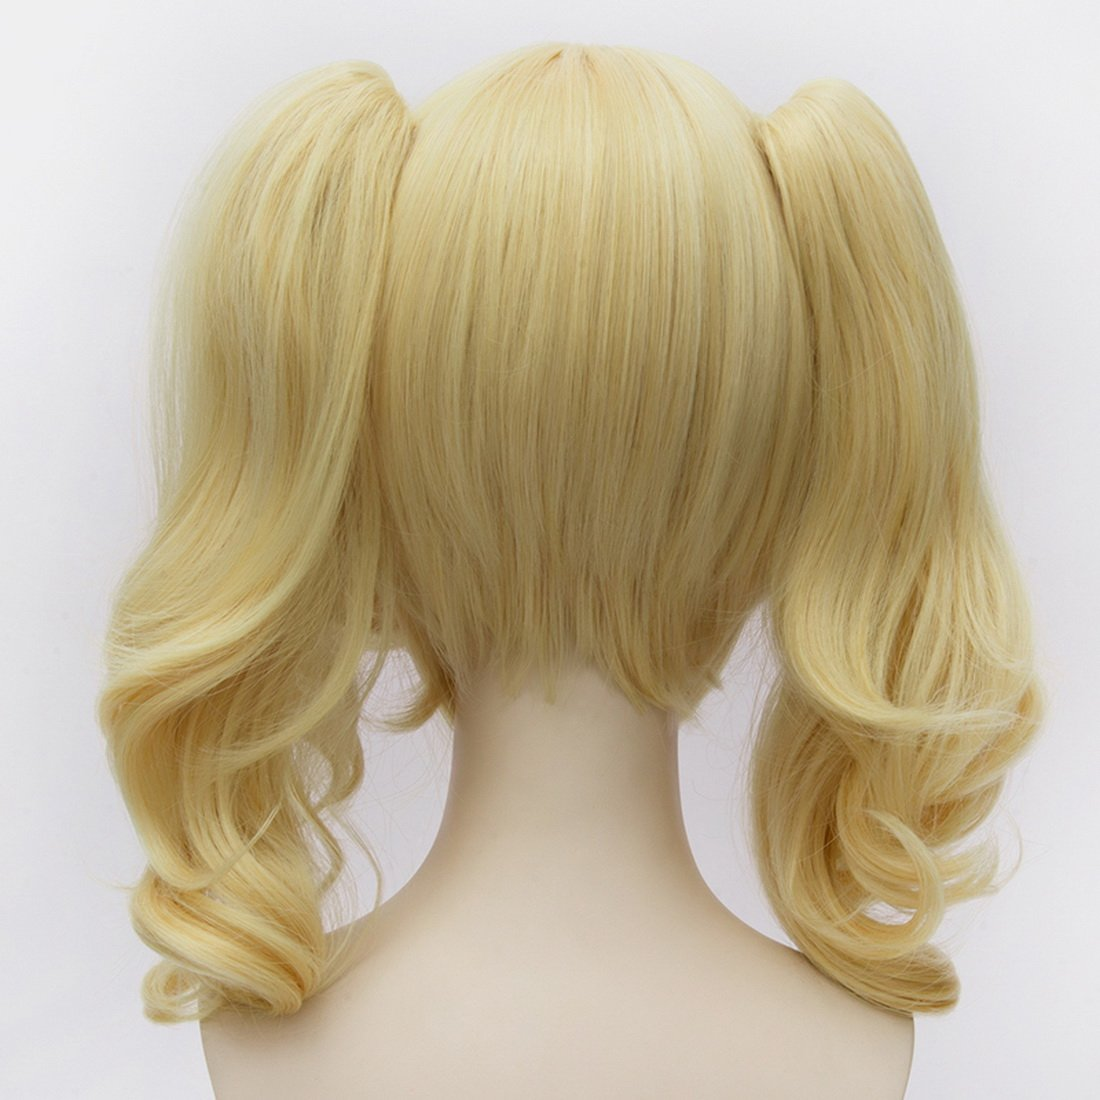 Amazon.com : Coolsky Batman Harley Quinn Women Long Blonde Lolita Curly Anime Cosplay Double Pongtails Wigs : Beauty